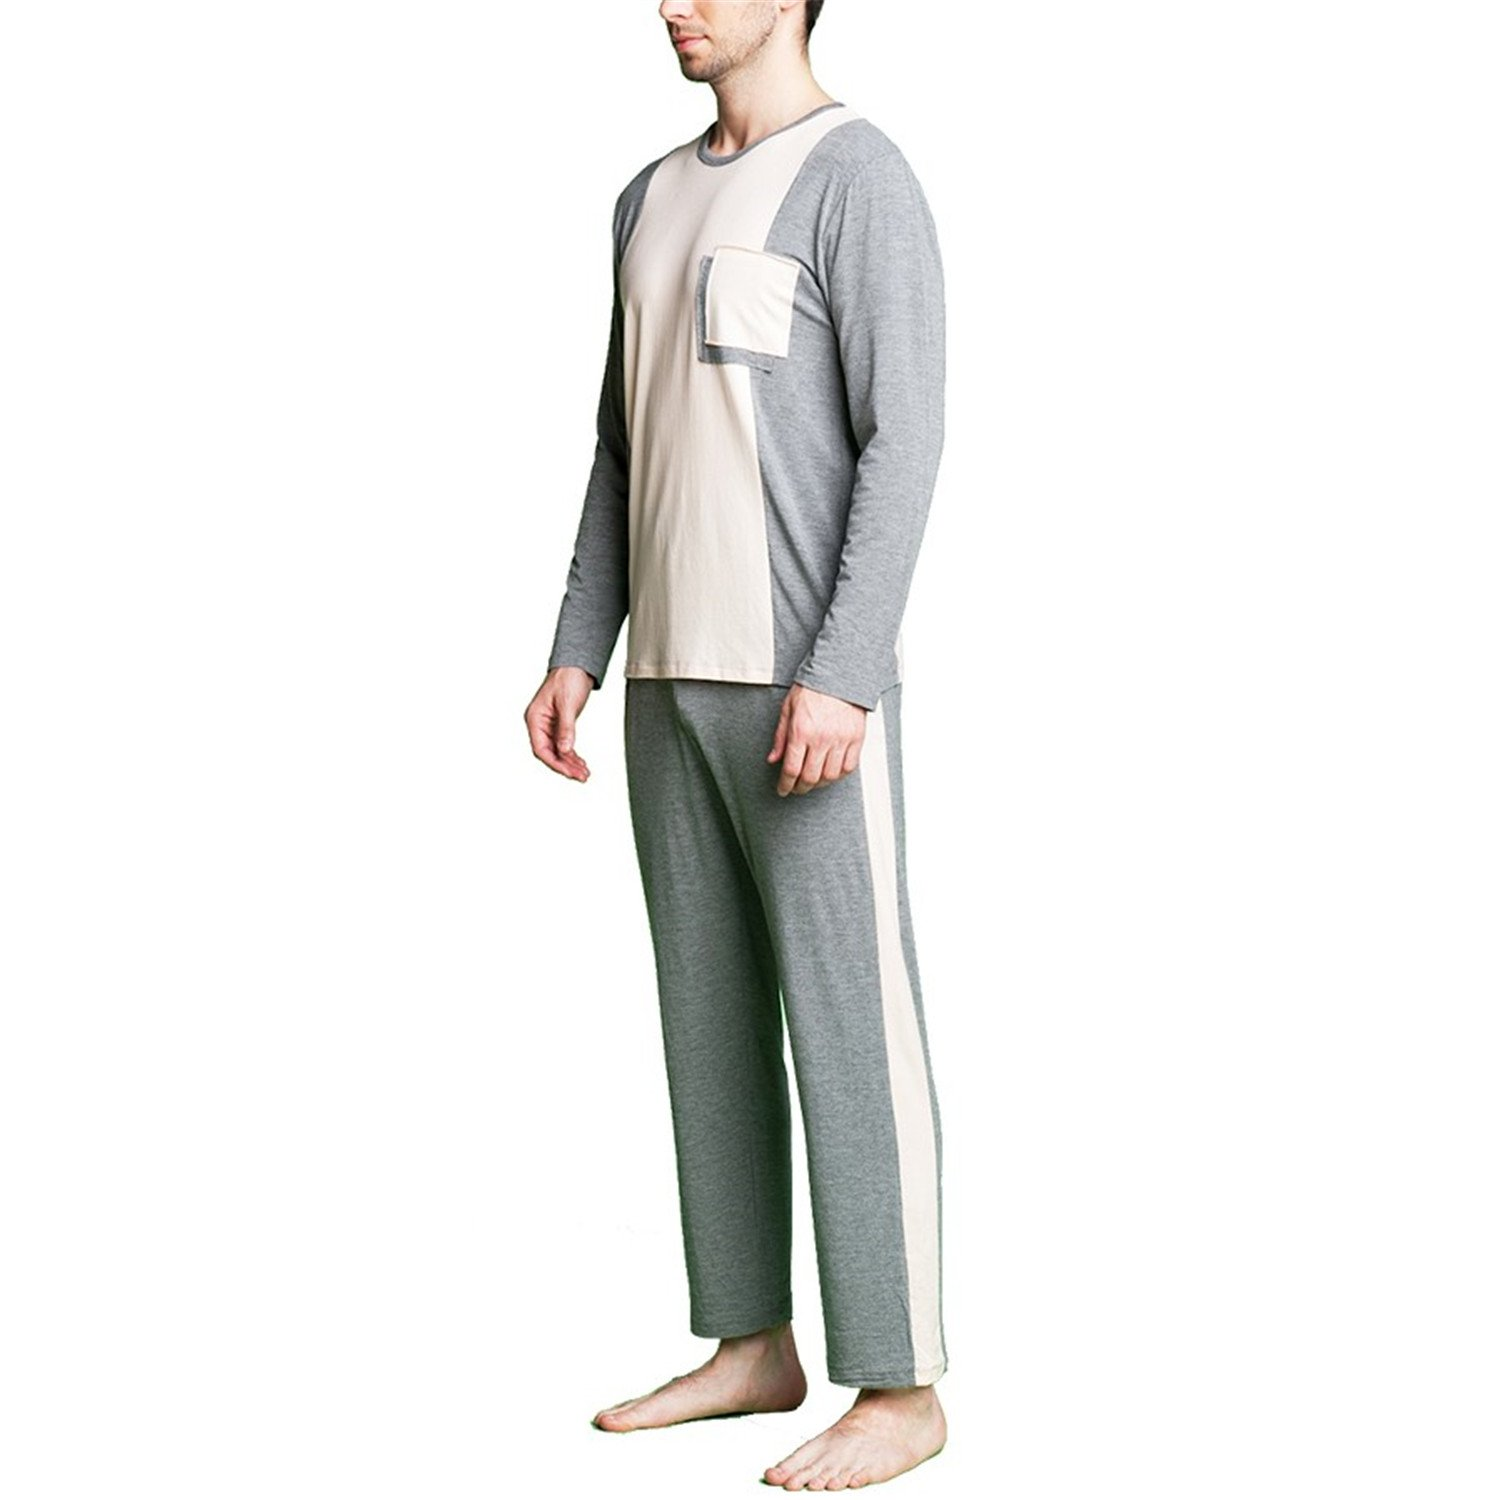 Michael Stevenson Patchwork Pajama Sets For Couple O-Neck Lounge Wear Men Long Sleeve Sleepwear at Amazon Mens Clothing store: